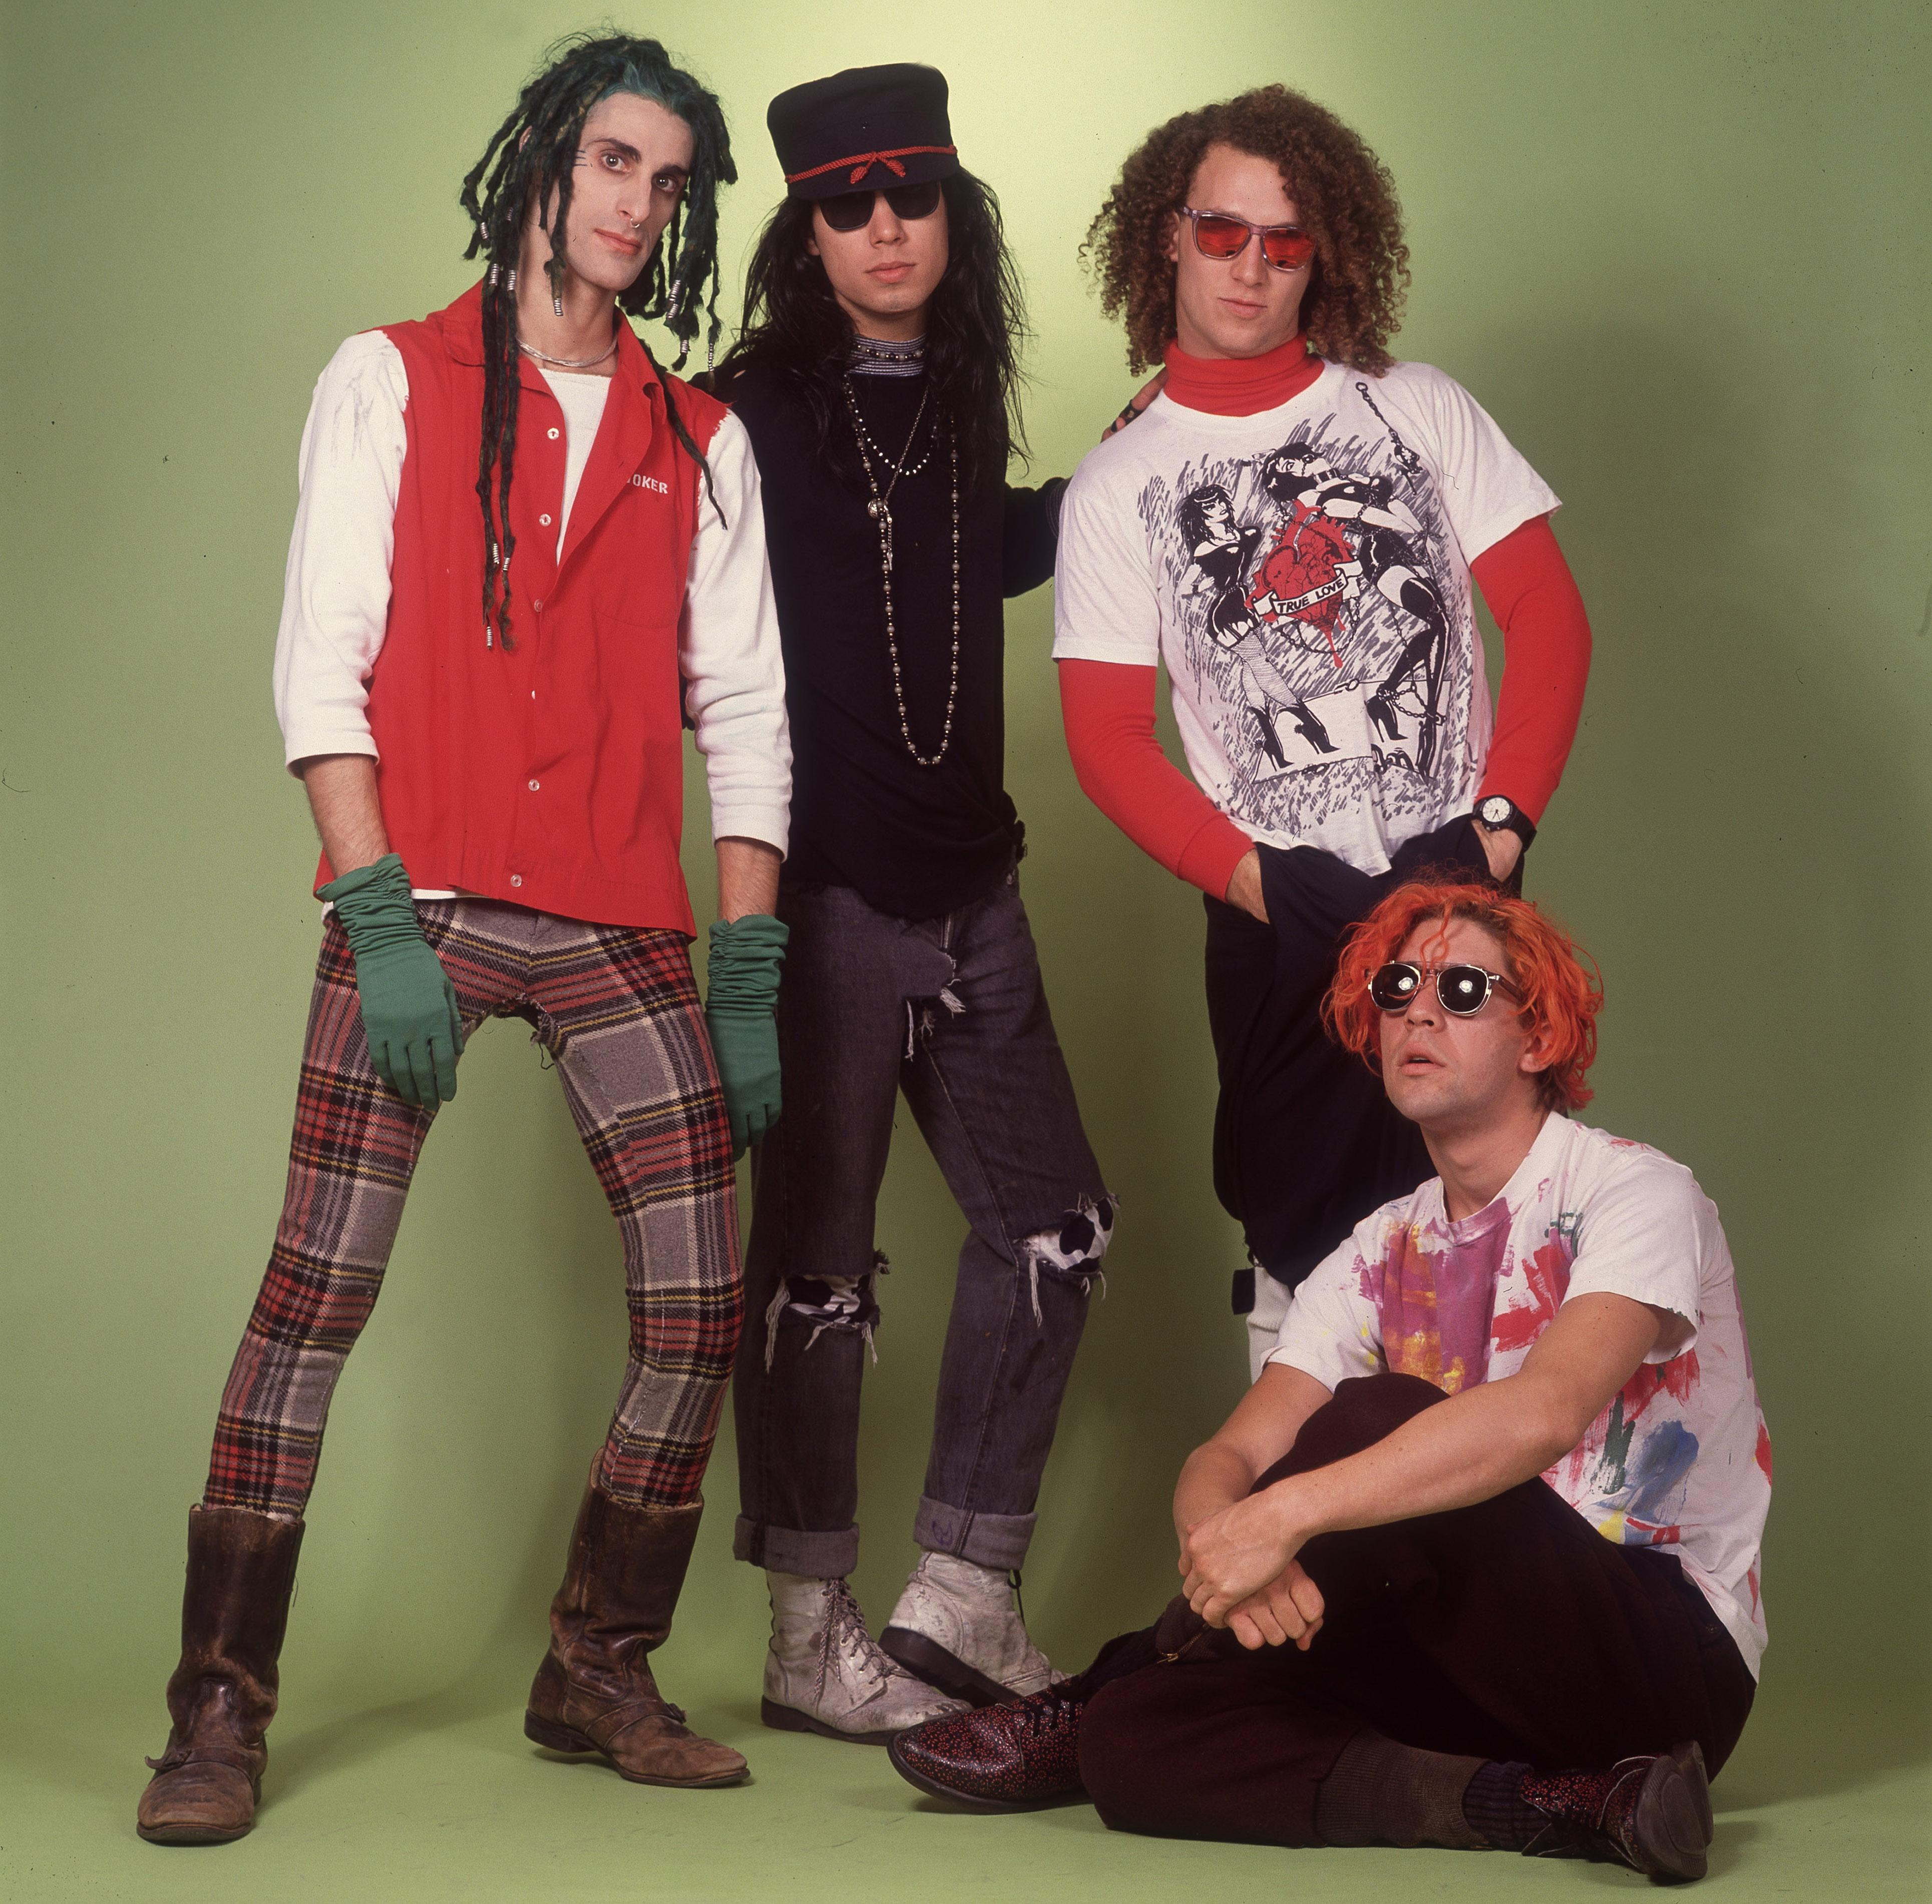 'Nothing's Shocking,' 30 years on: How Jane's Addiction's studio debut revolutionized rock 'n' roll